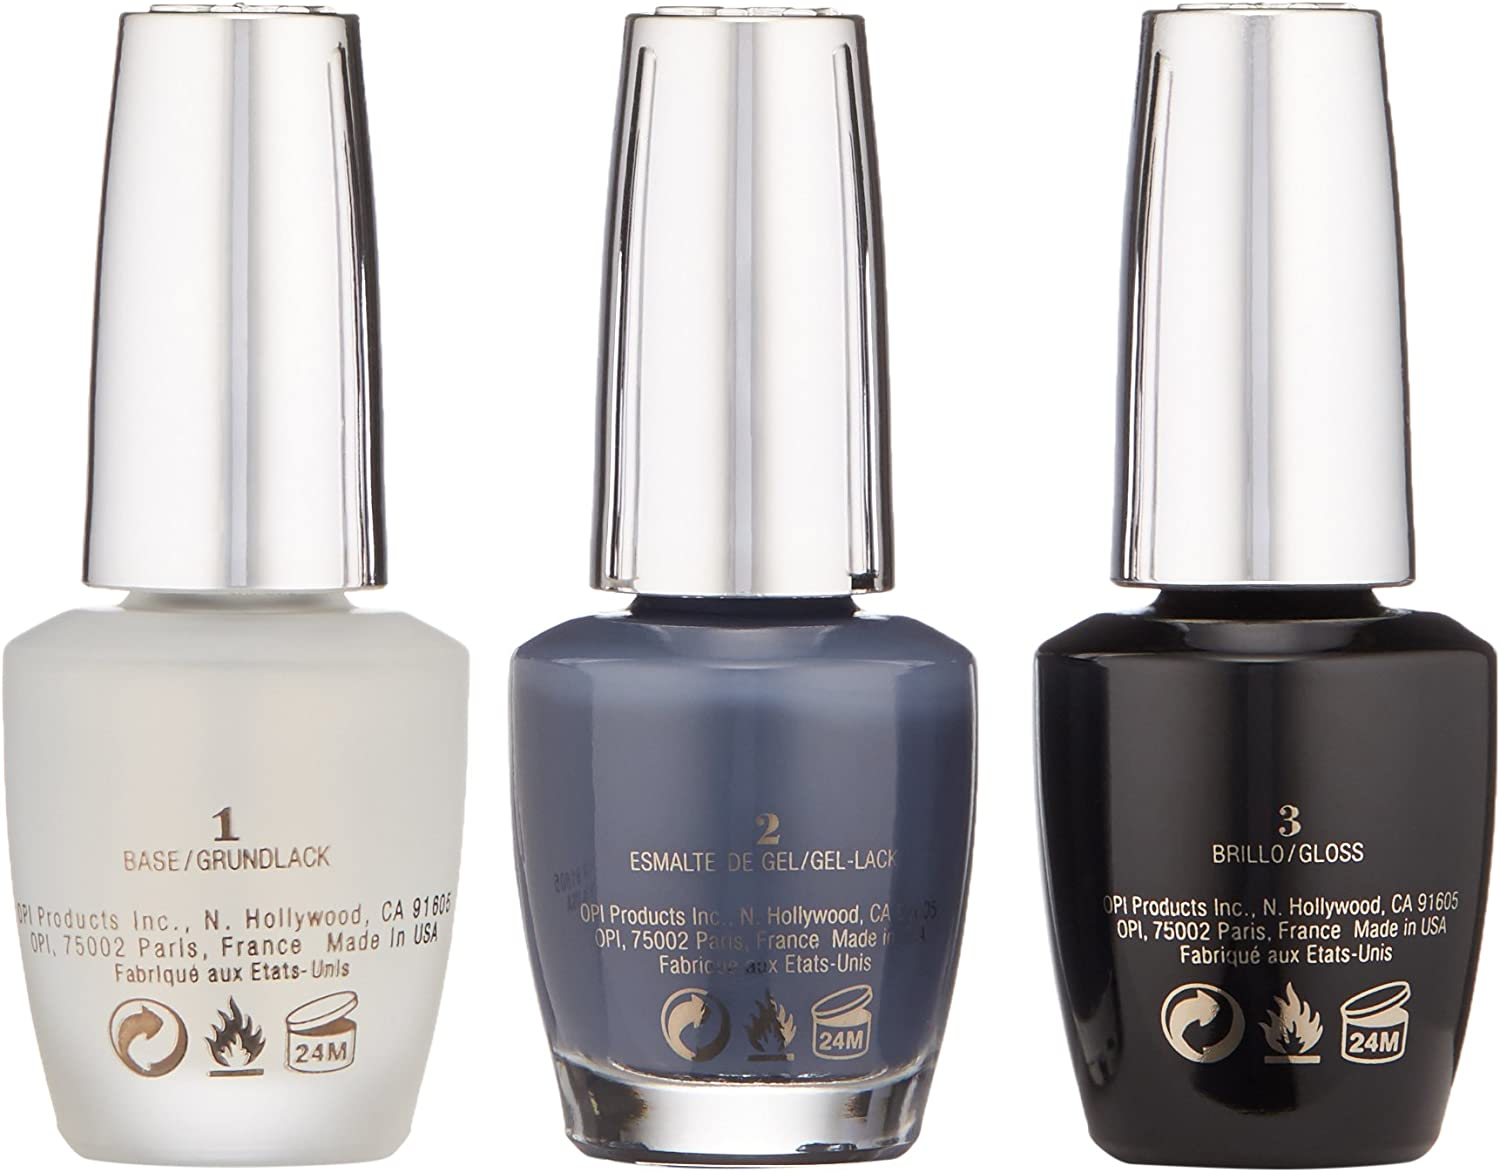 OPI Infinite Shine Trio Pack # 2 isdi9: Amazon.es: Salud y cuidado personal